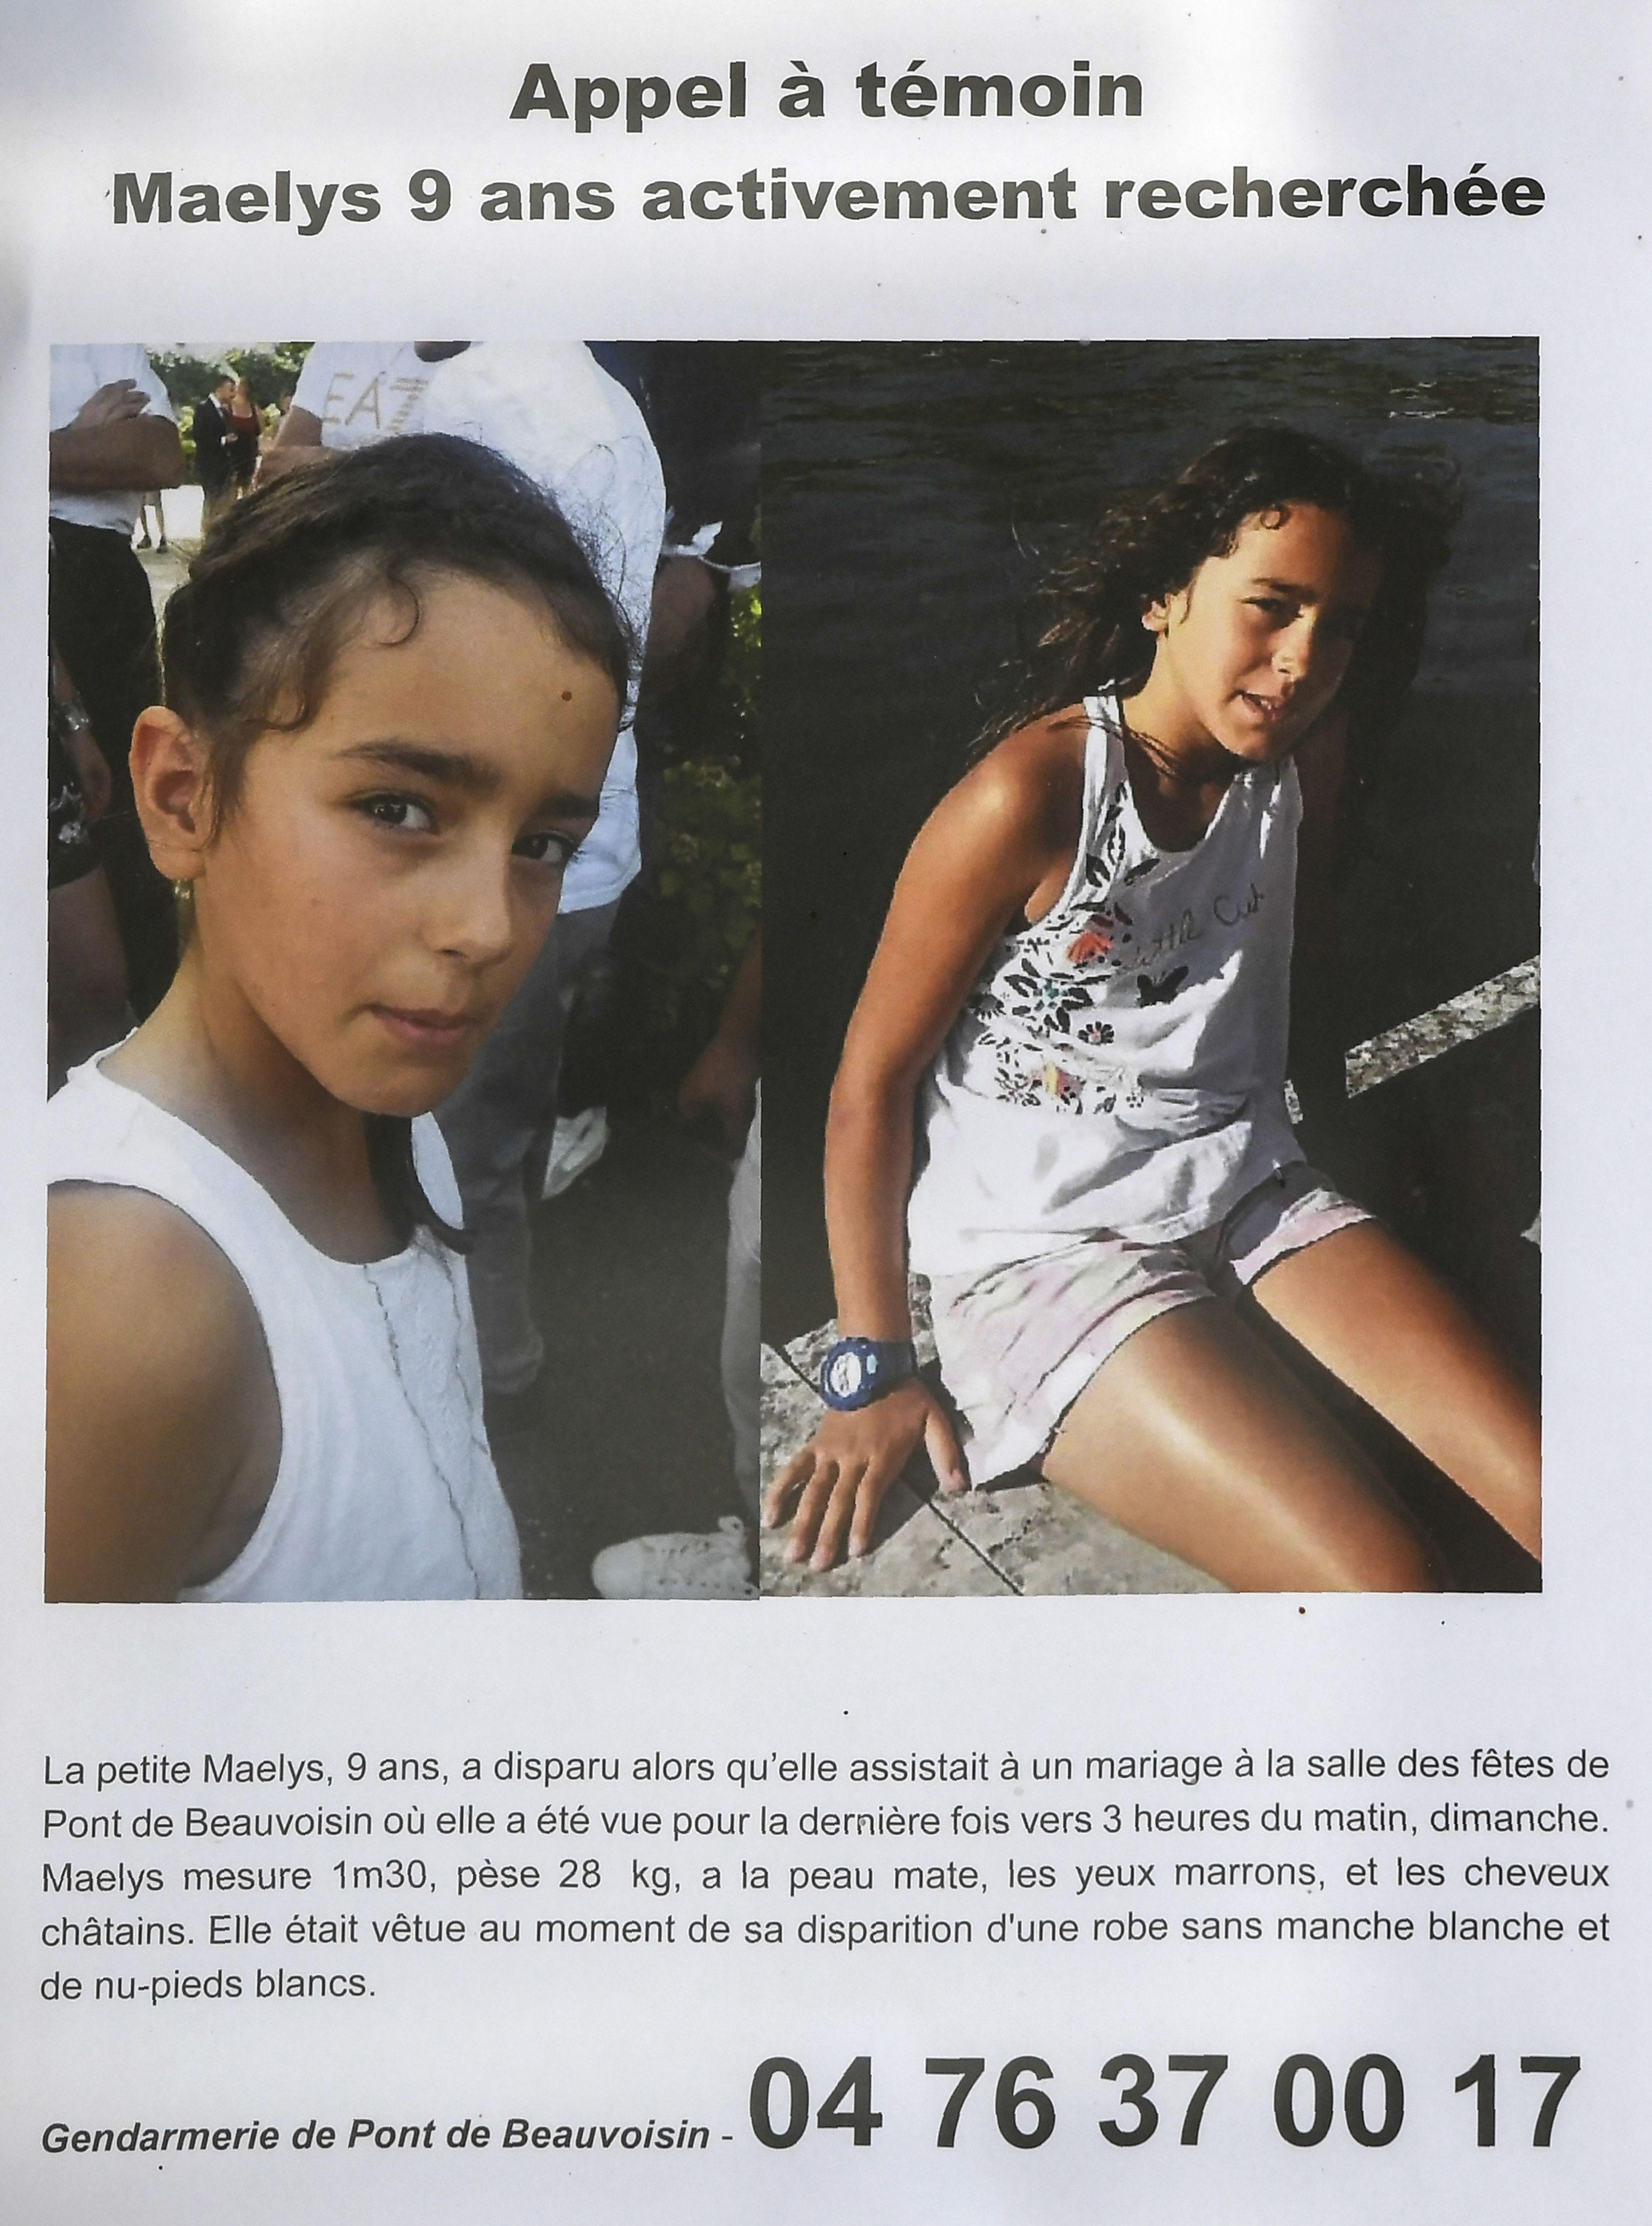 Body of Maelys de Araujo, 9, found five months after she vanished from wedding in France